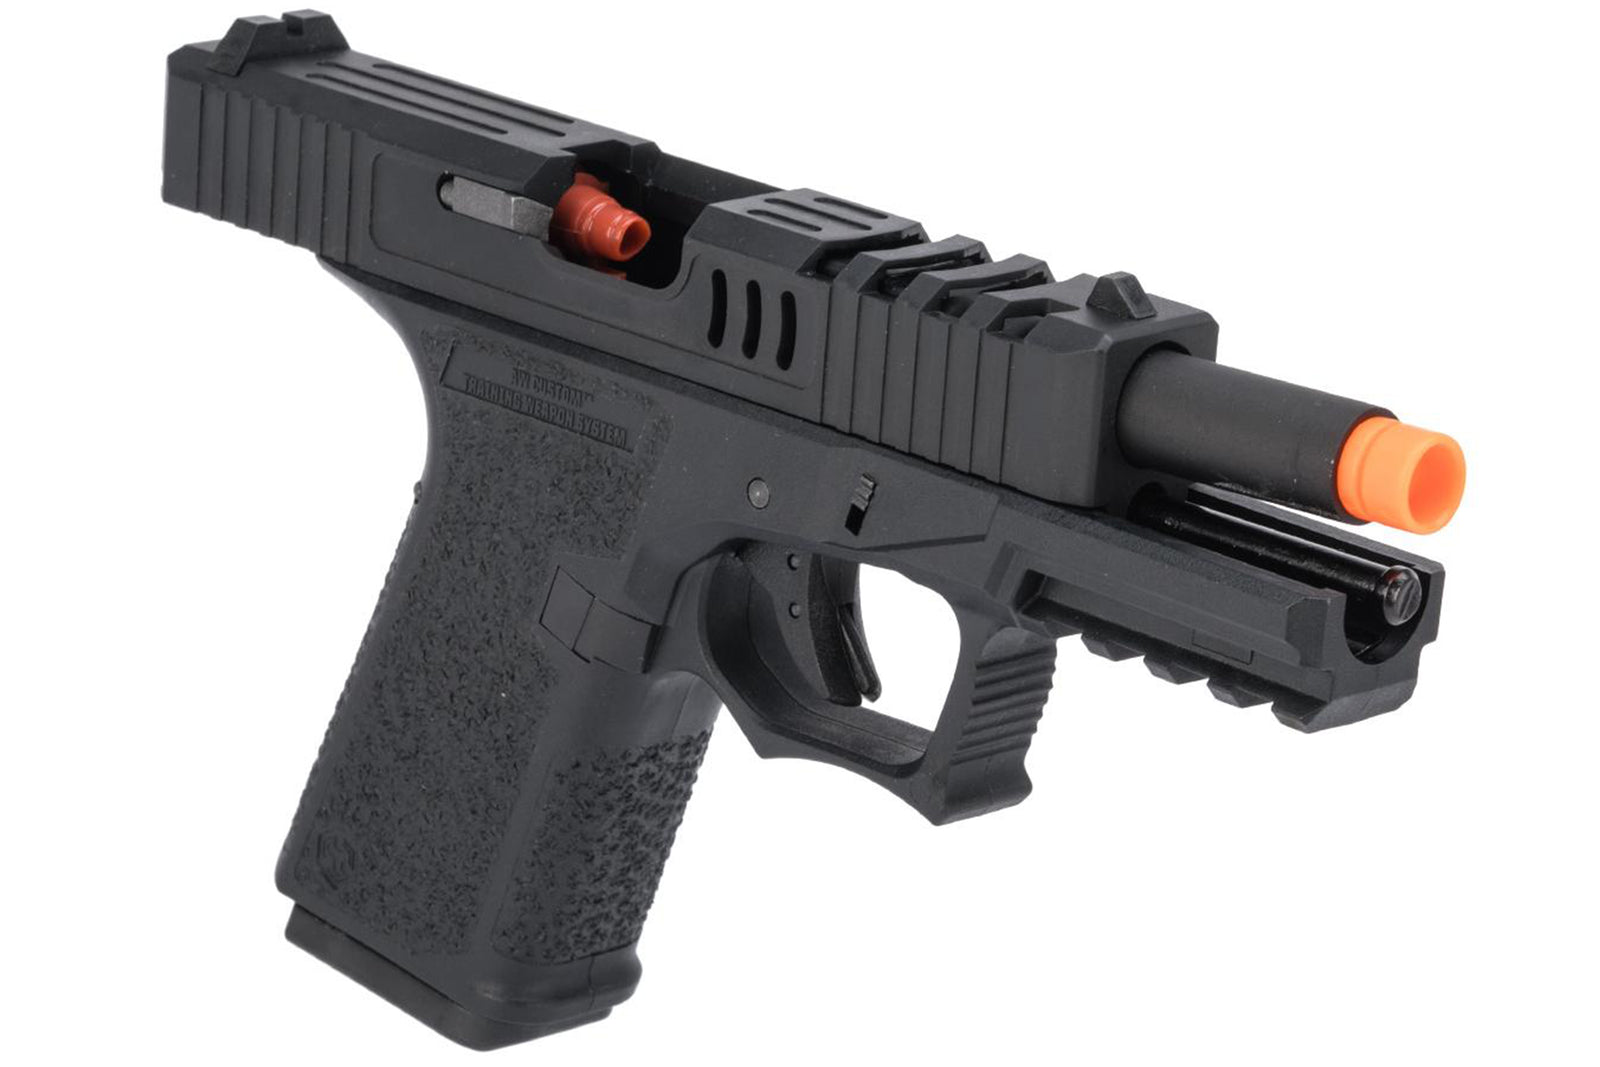 AW Custom VX9 Compact Series Gas Blowback Airsoft Pistol Model: X80